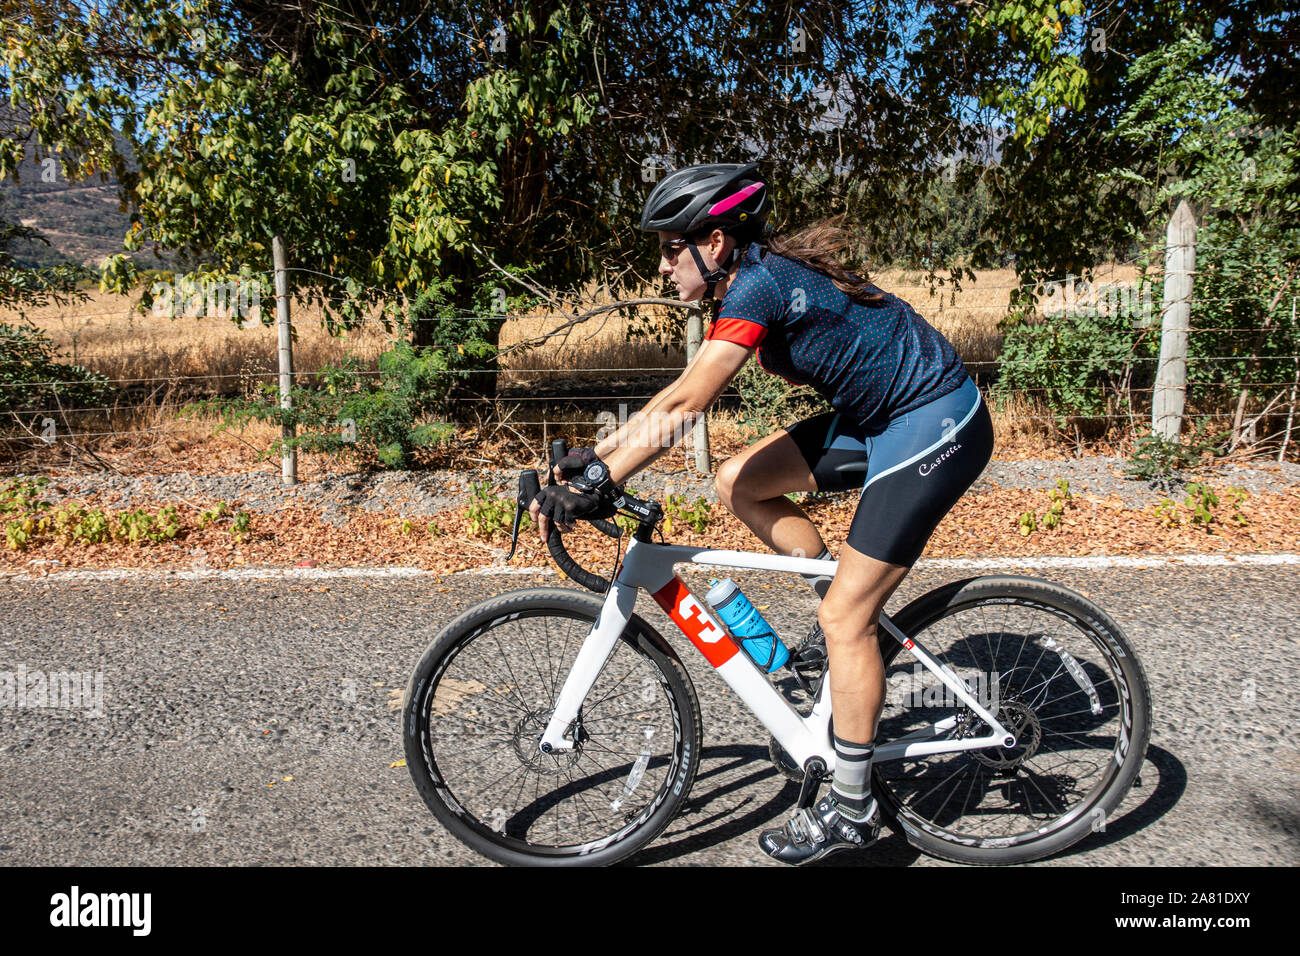 Female cyclist riding a gravel bike on the road. Stock Photo